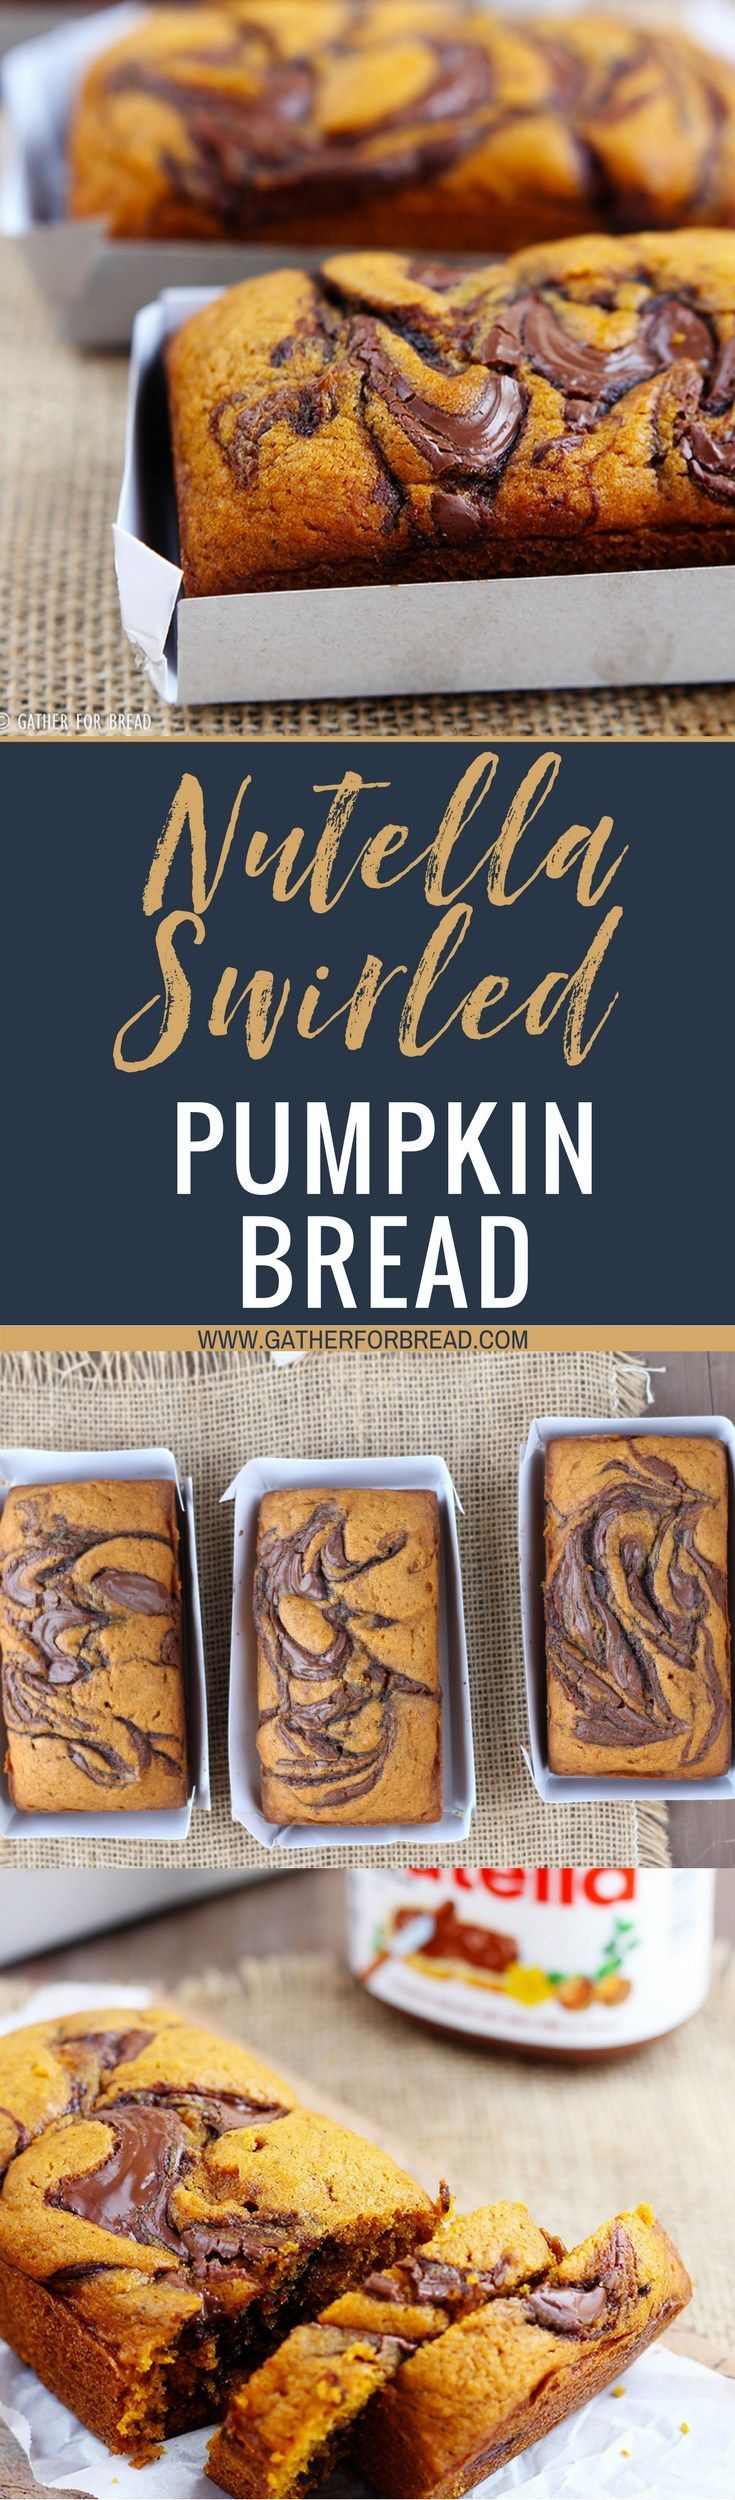 Nutella Swirled Pumpkin Bread - Moist pumpkin bread swirled with adelicious flavor of Nutella. Chocolate and pumpkin pair up perfectly in these fall loaves. A favorite autumn quick bread.